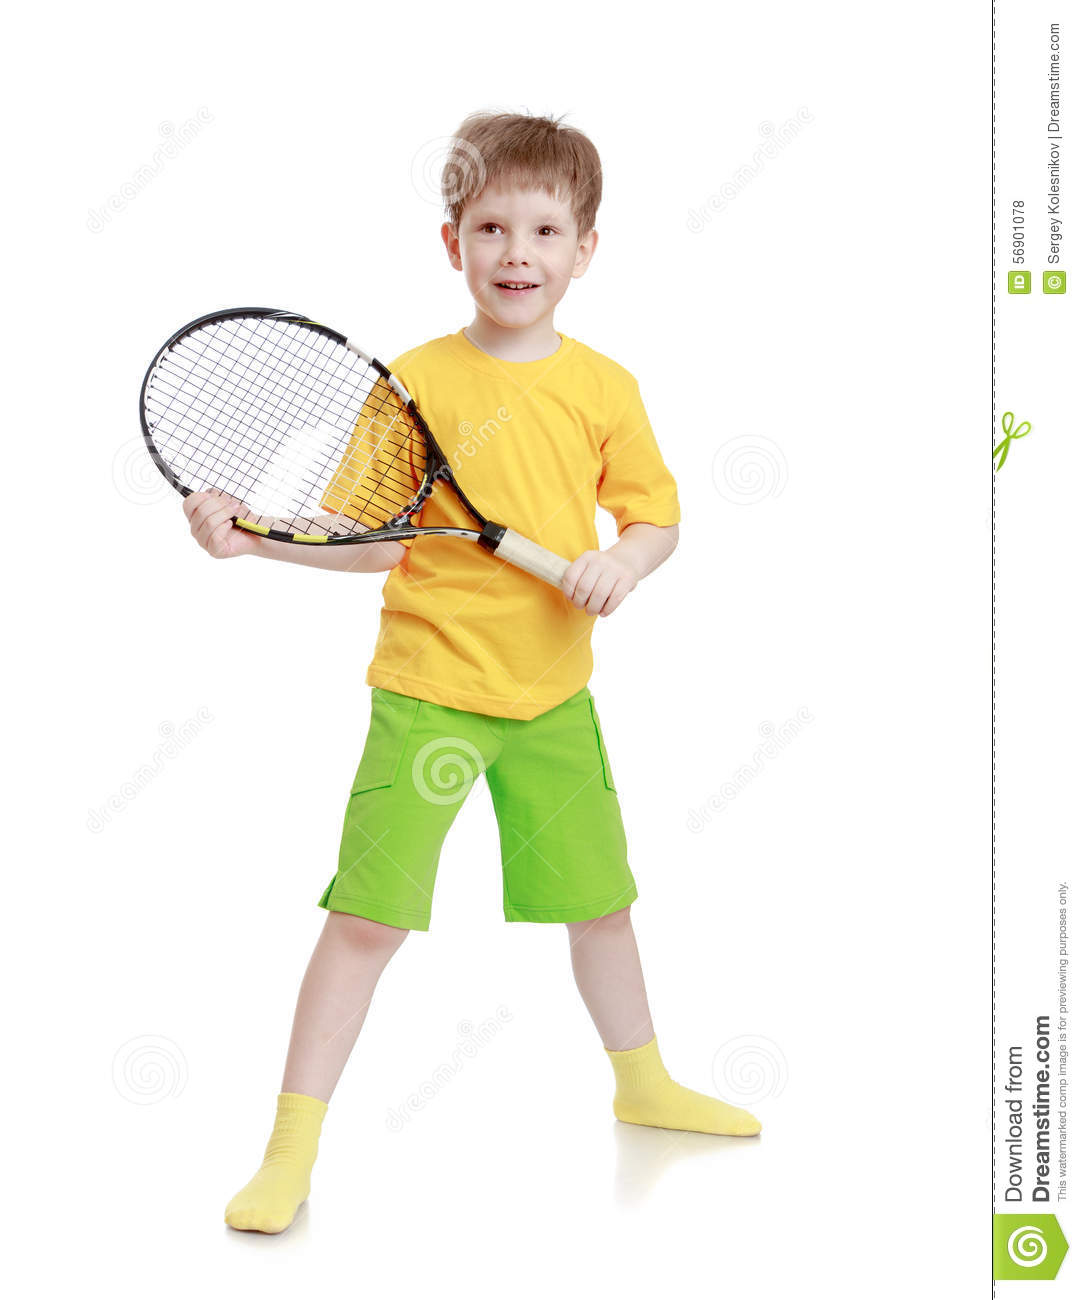 Boy with racket in hand stock photo. Image of player ...